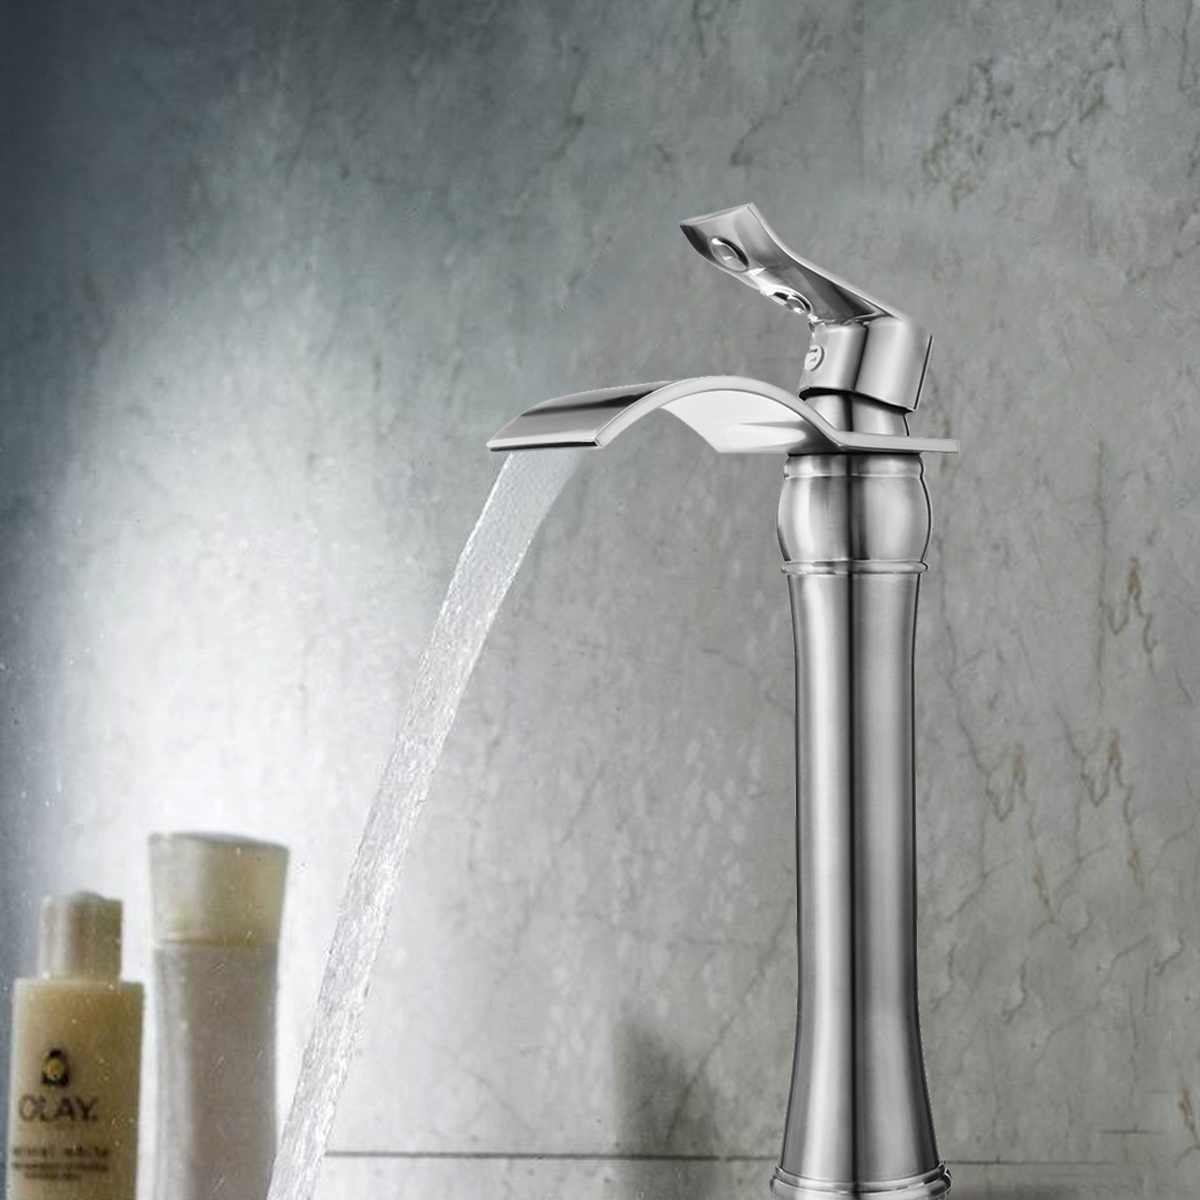 все цены на Modern Chrome Full Copper Brass Base High Basin Faucet Bathroom Waterfall Faucet Hot and Cold Mixer Tap Single Handle Sink Tap онлайн